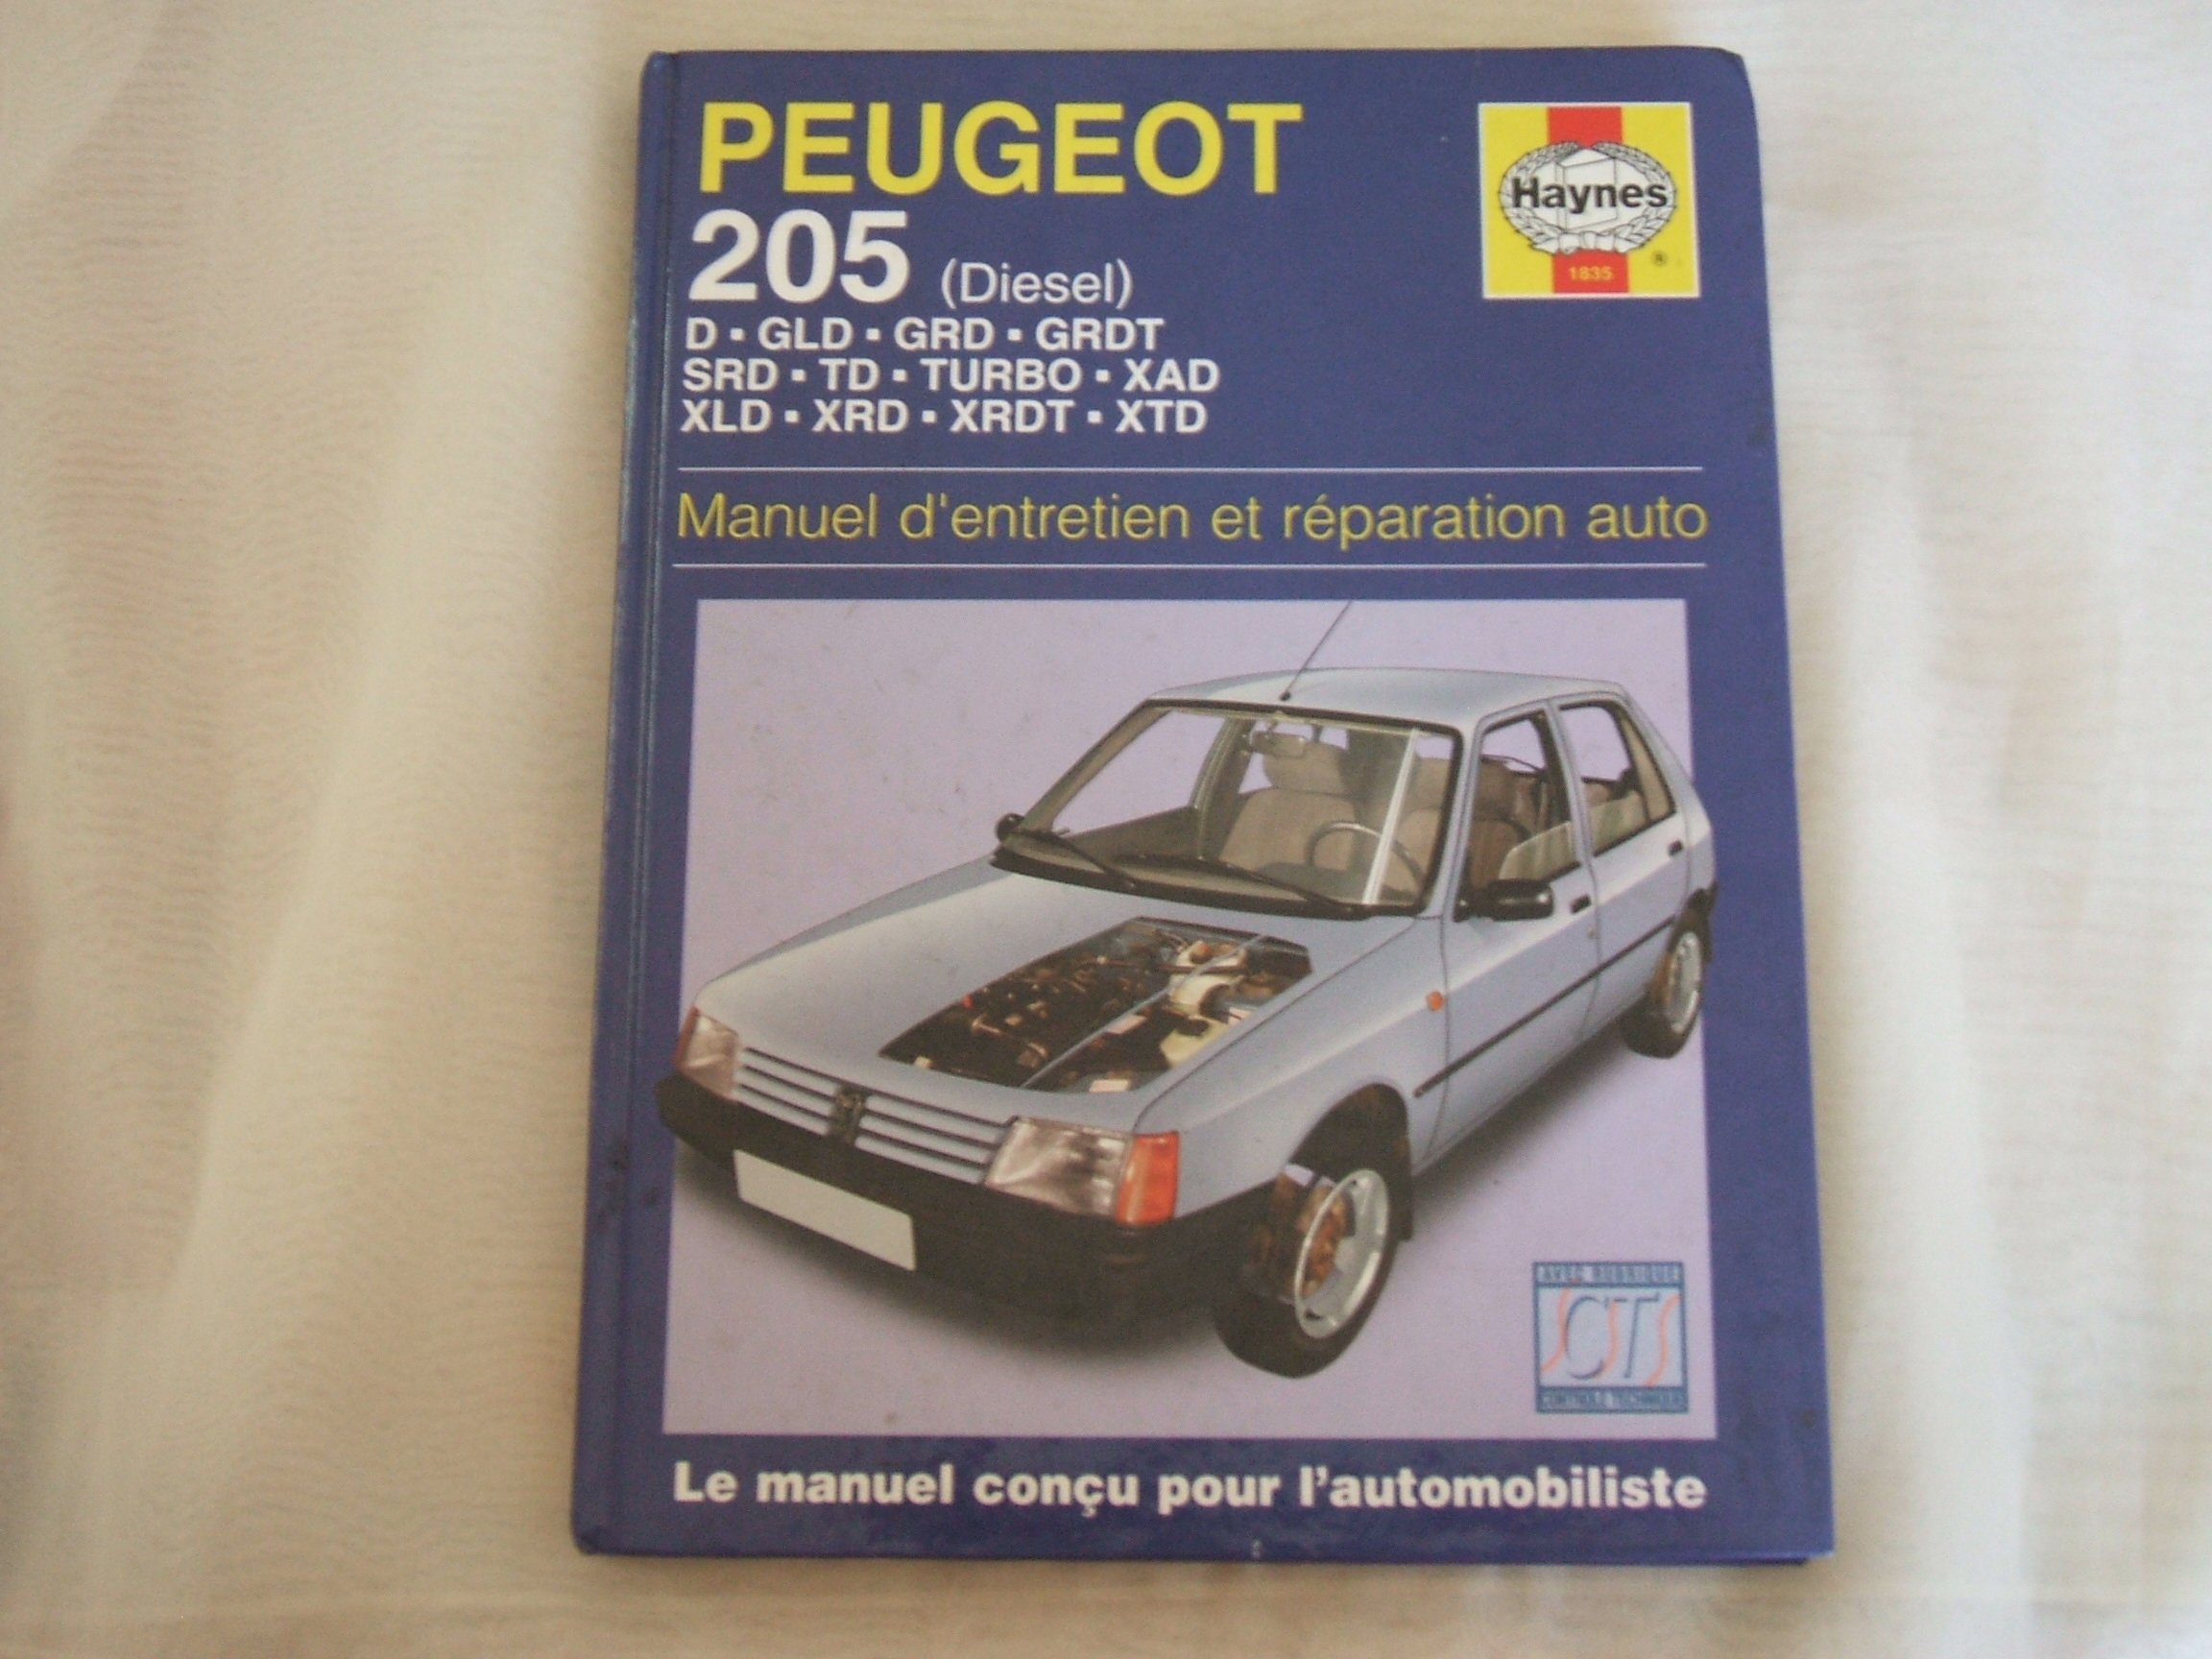 Peugeot 205 Diesel (French service & repair manuals): Amazon.es: Libros en idiomas extranjeros